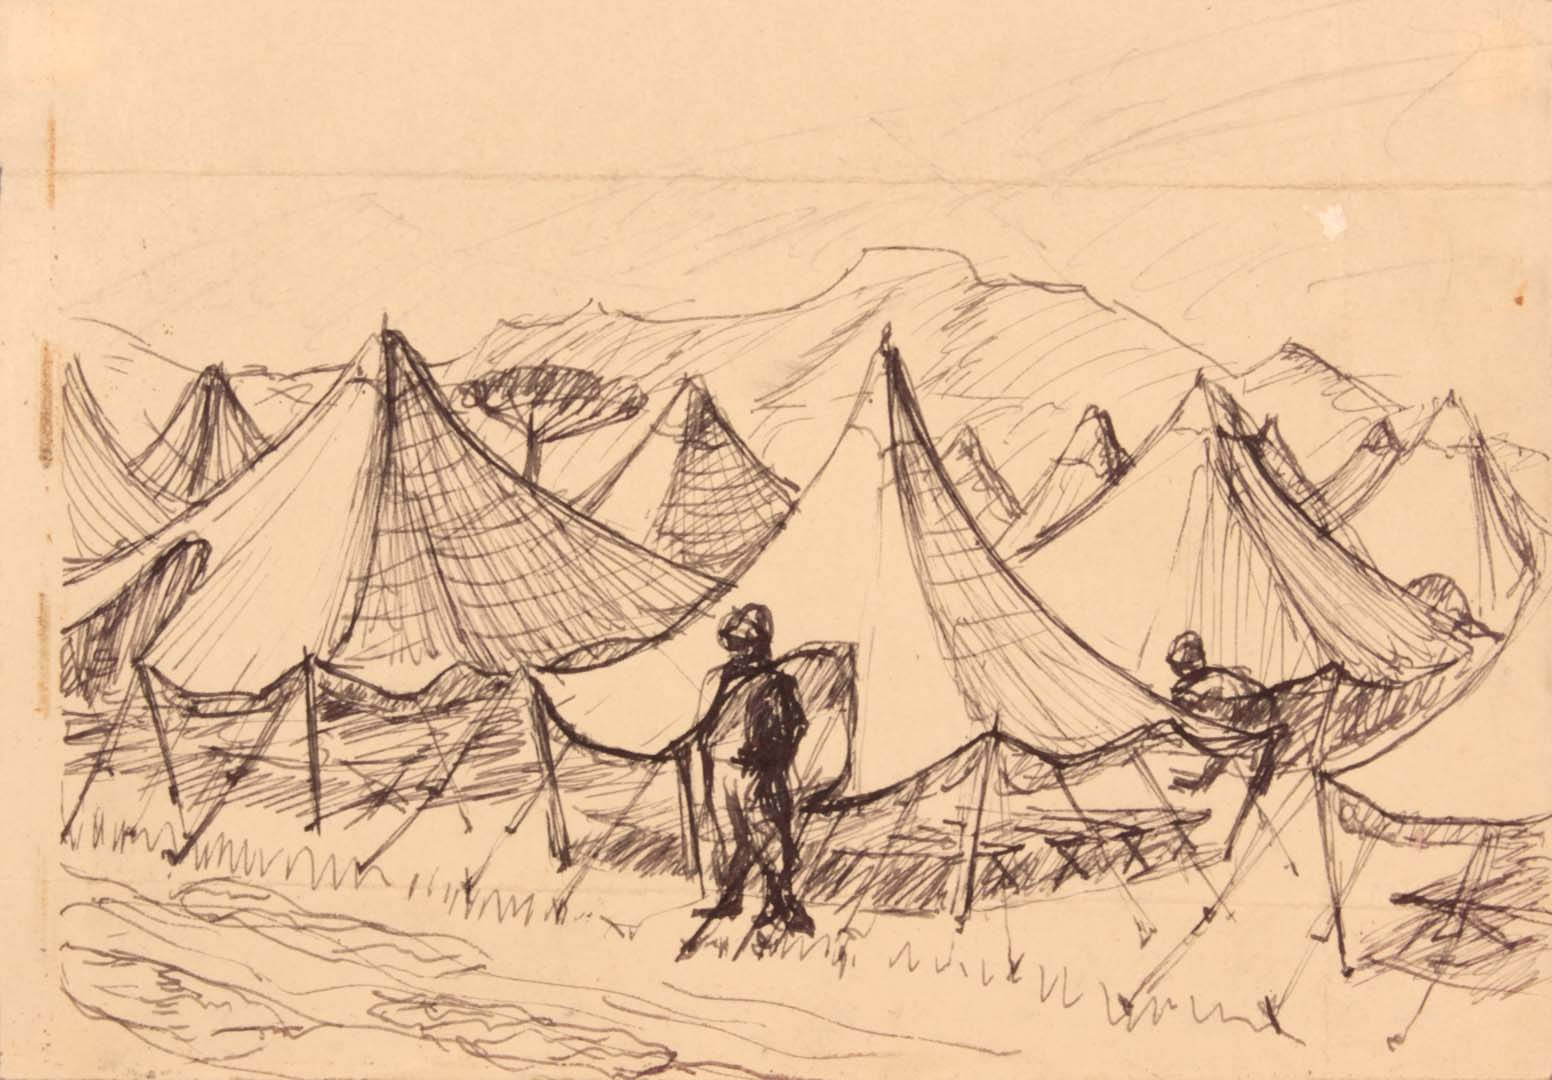 1944 Caserta Italy VII (Tents) Pen and Ink on Paper 4.50 x 6.3125